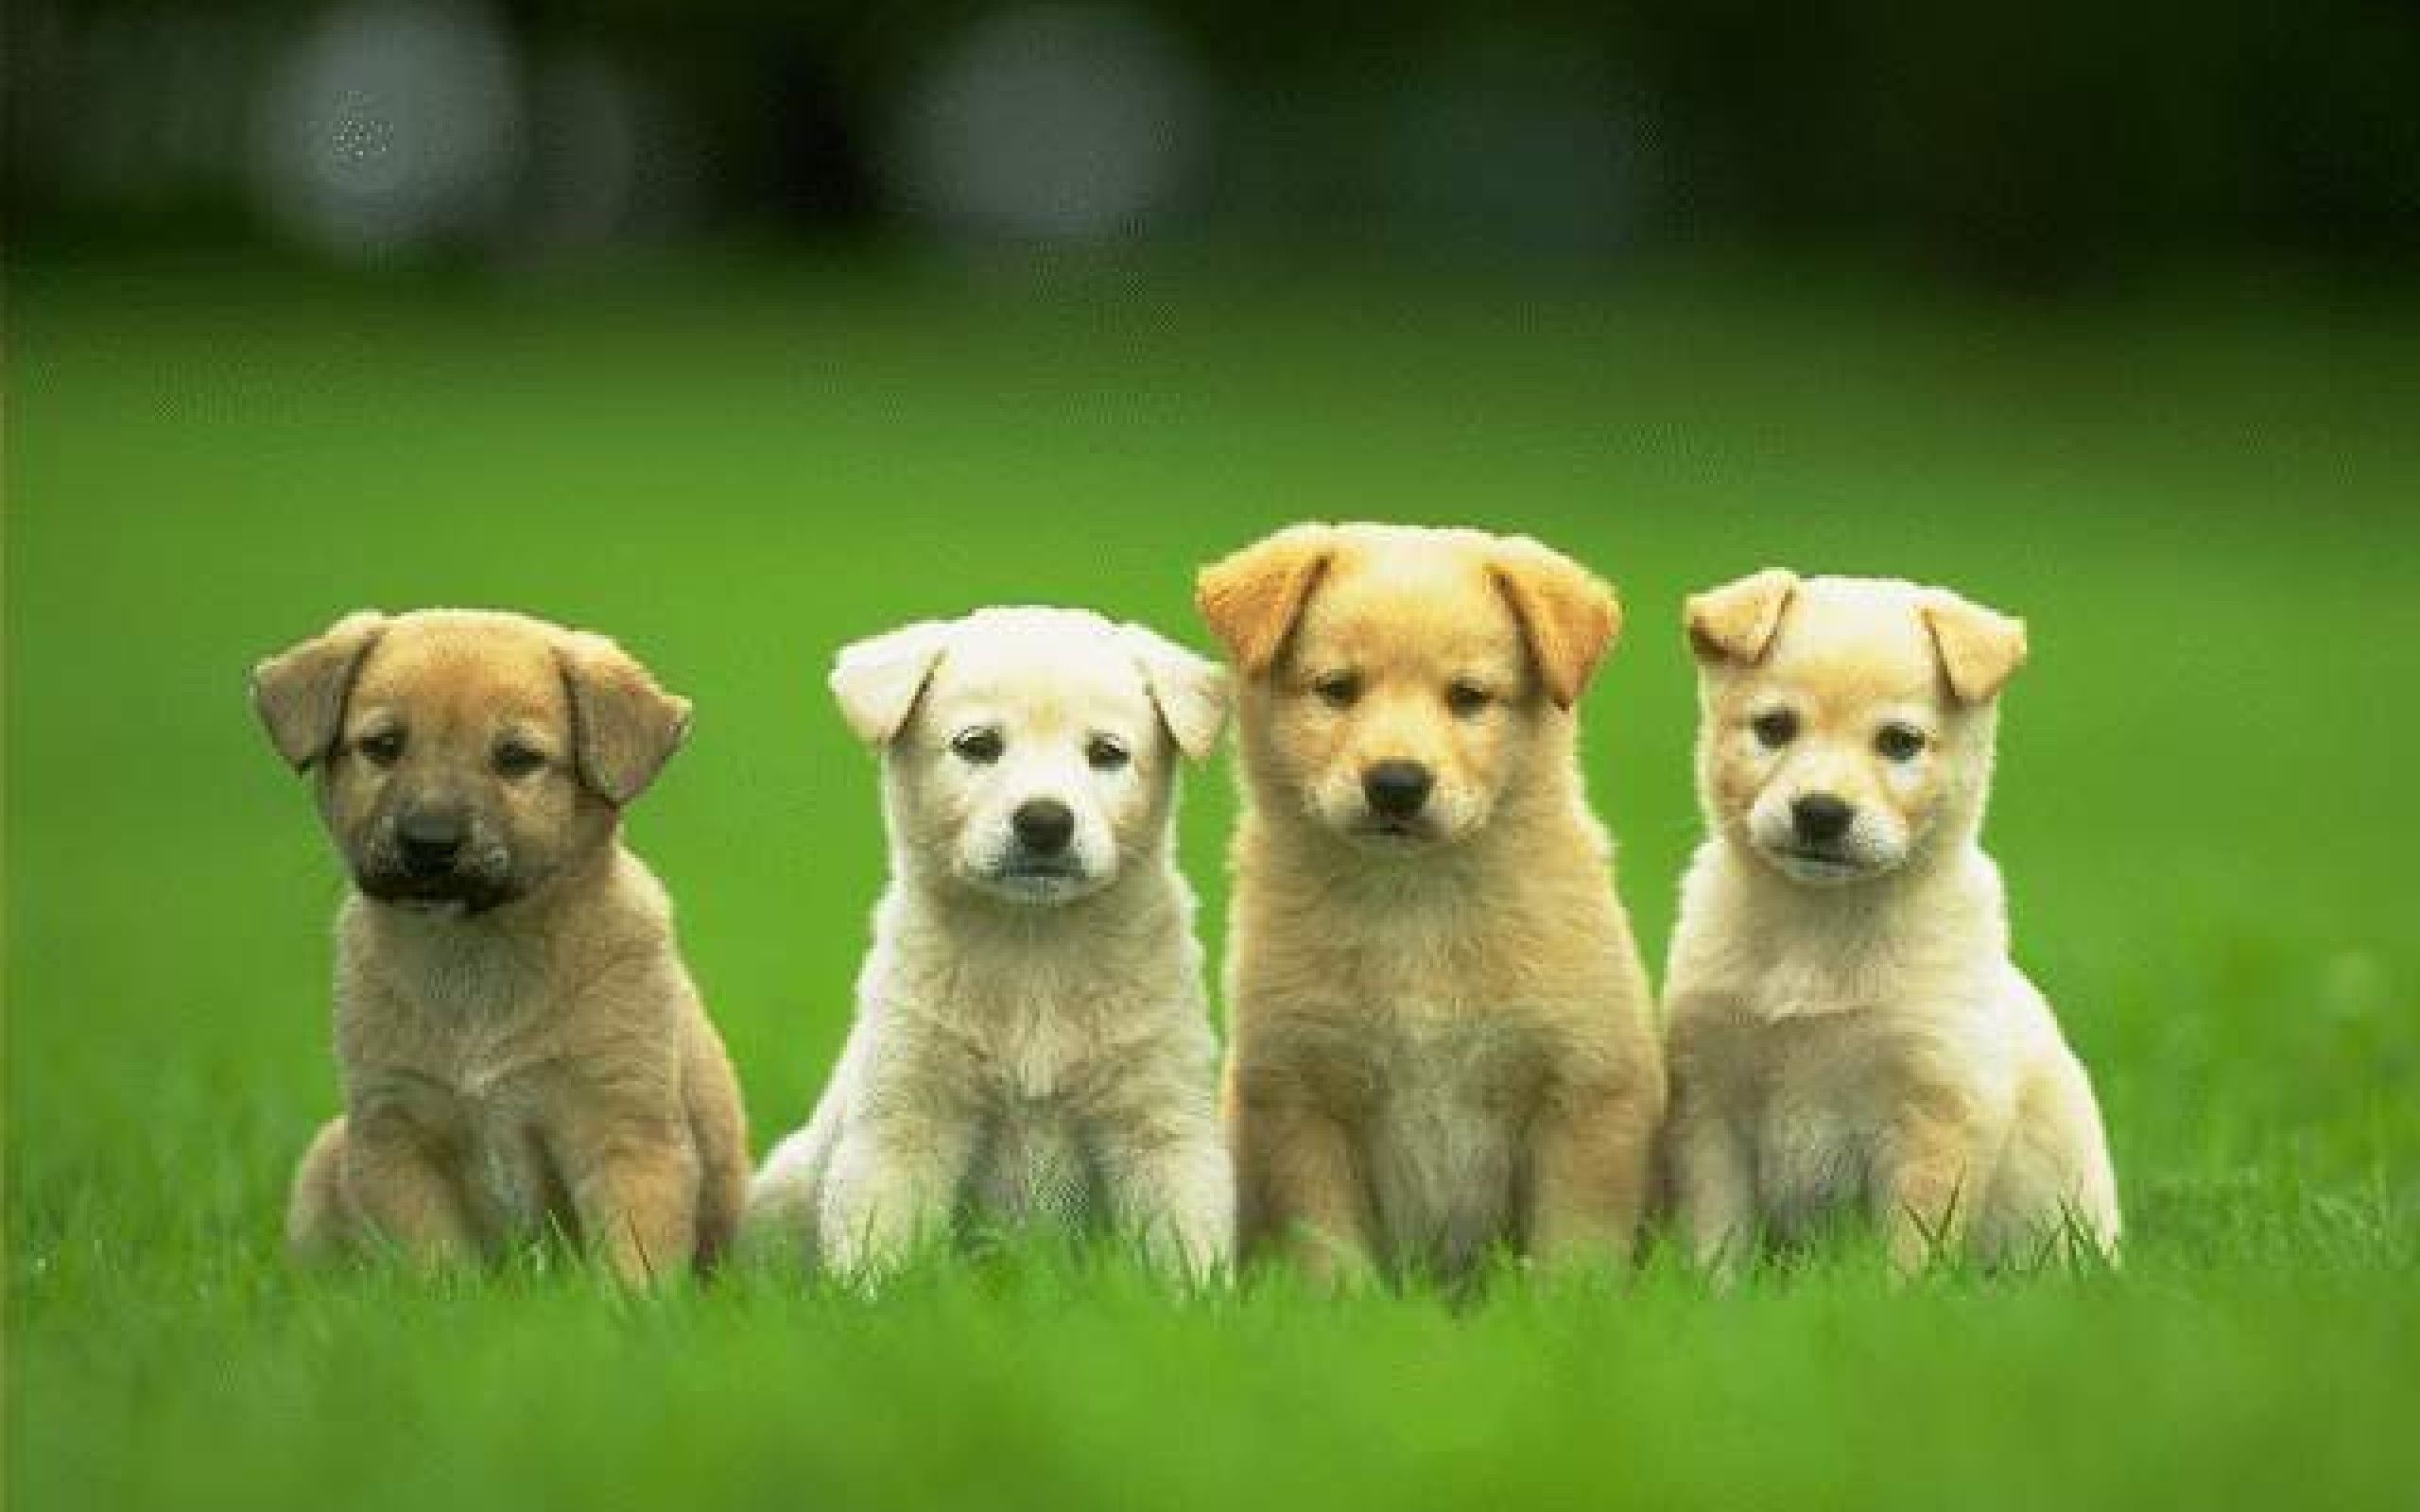 dog wallpapers collection for free download | hd wallpapers